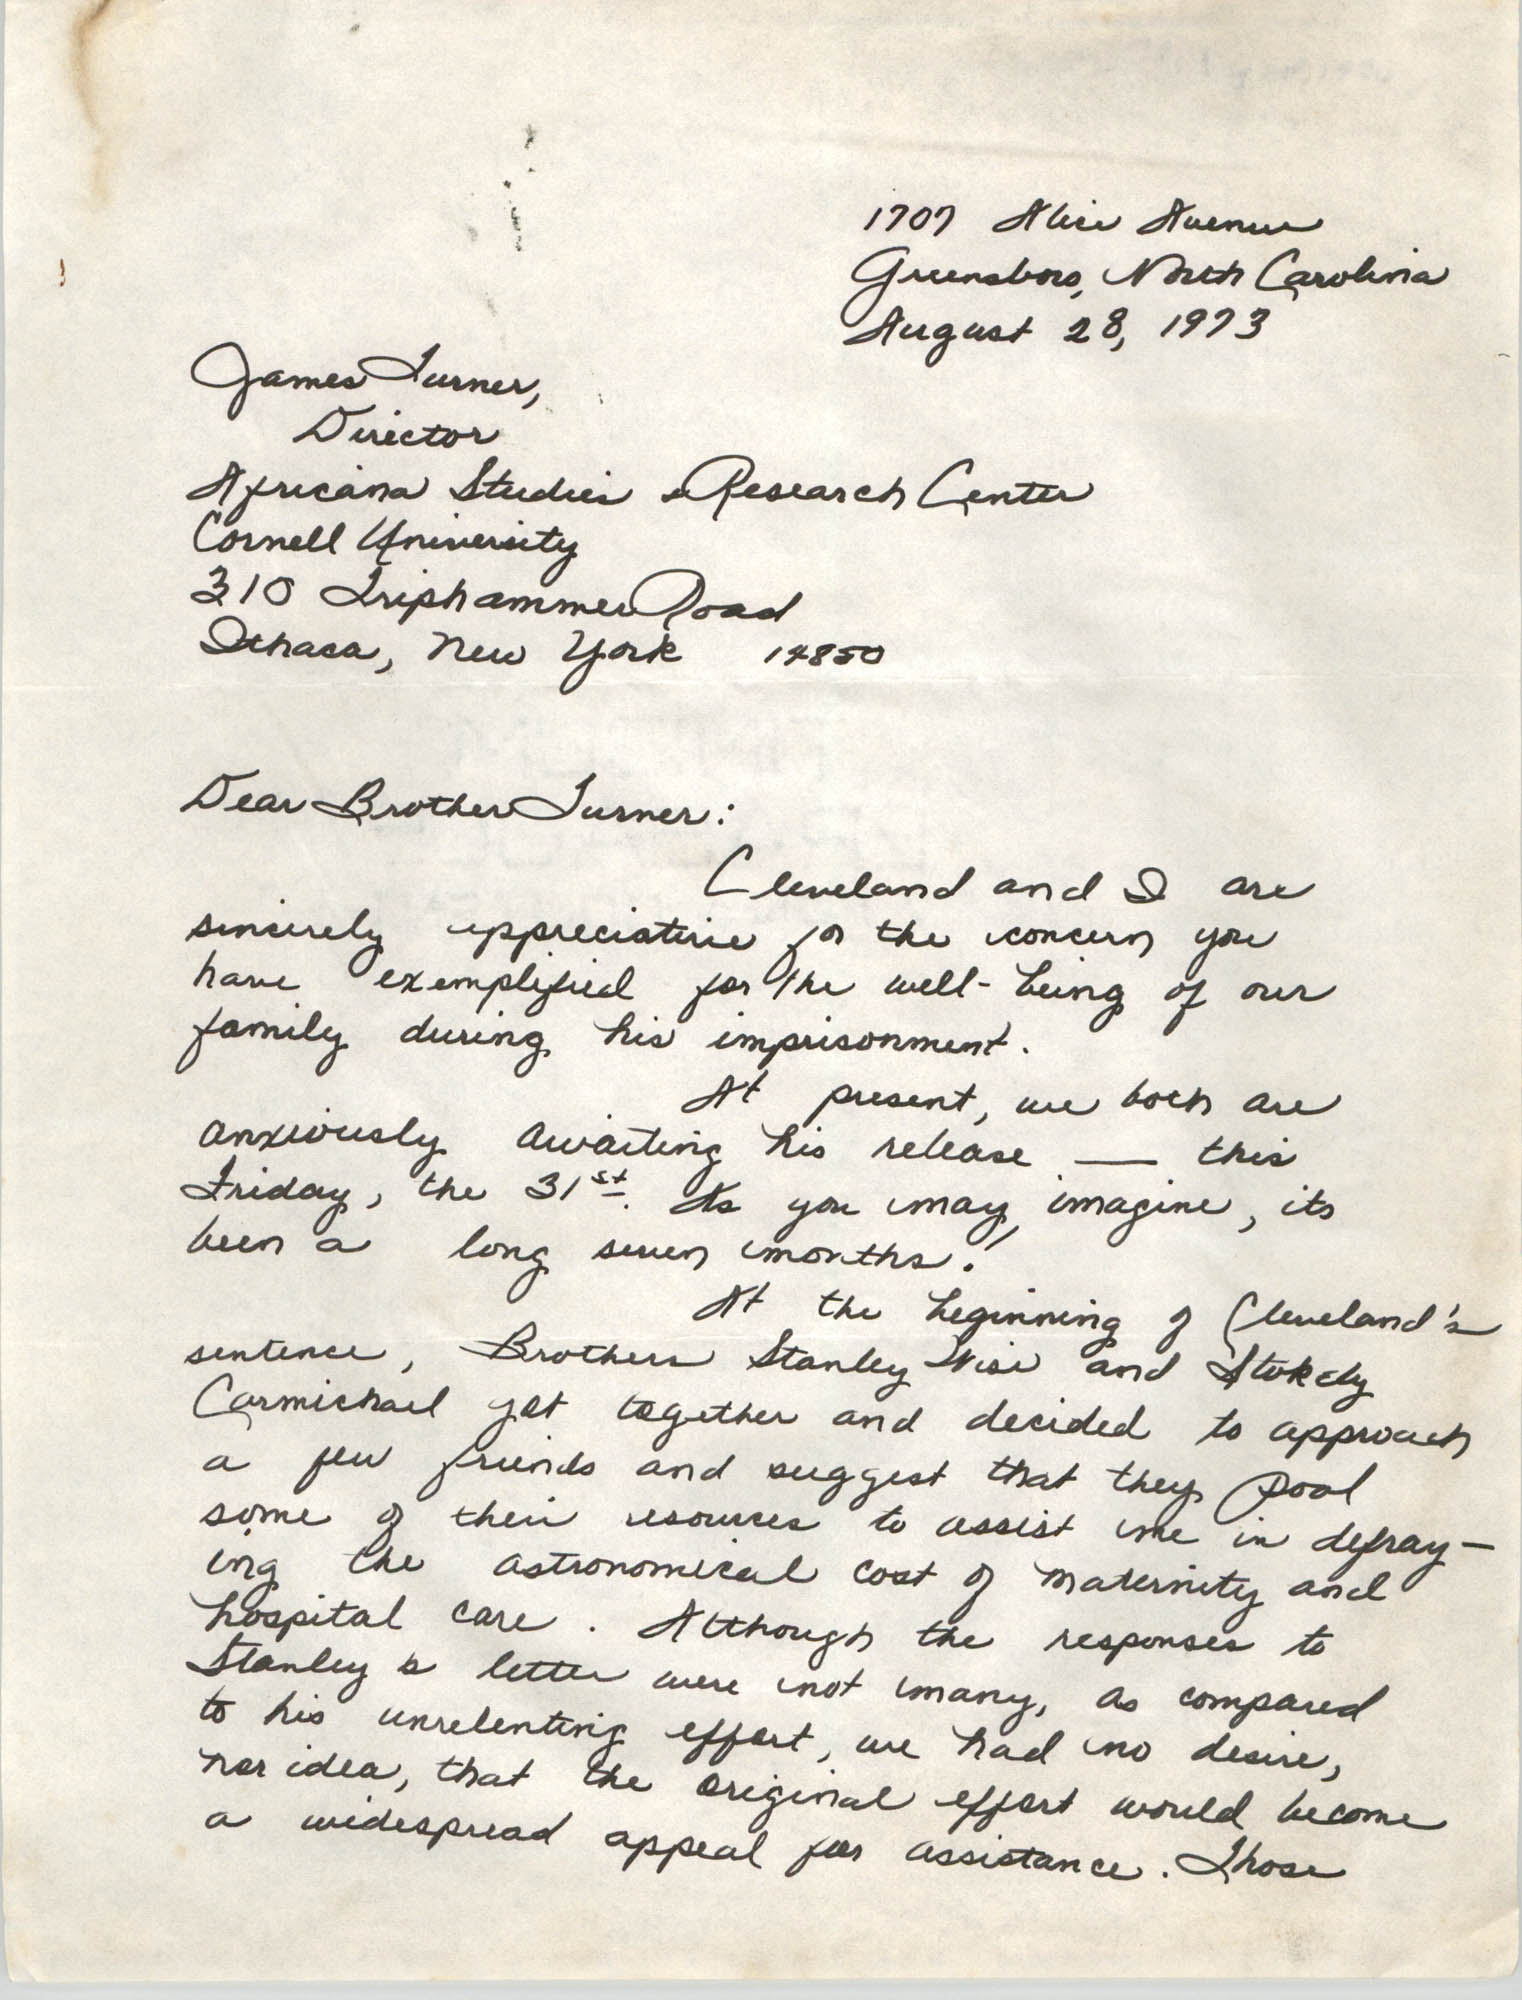 Letter from Gwendolyn Sellers to James Turner, August 28, 1973